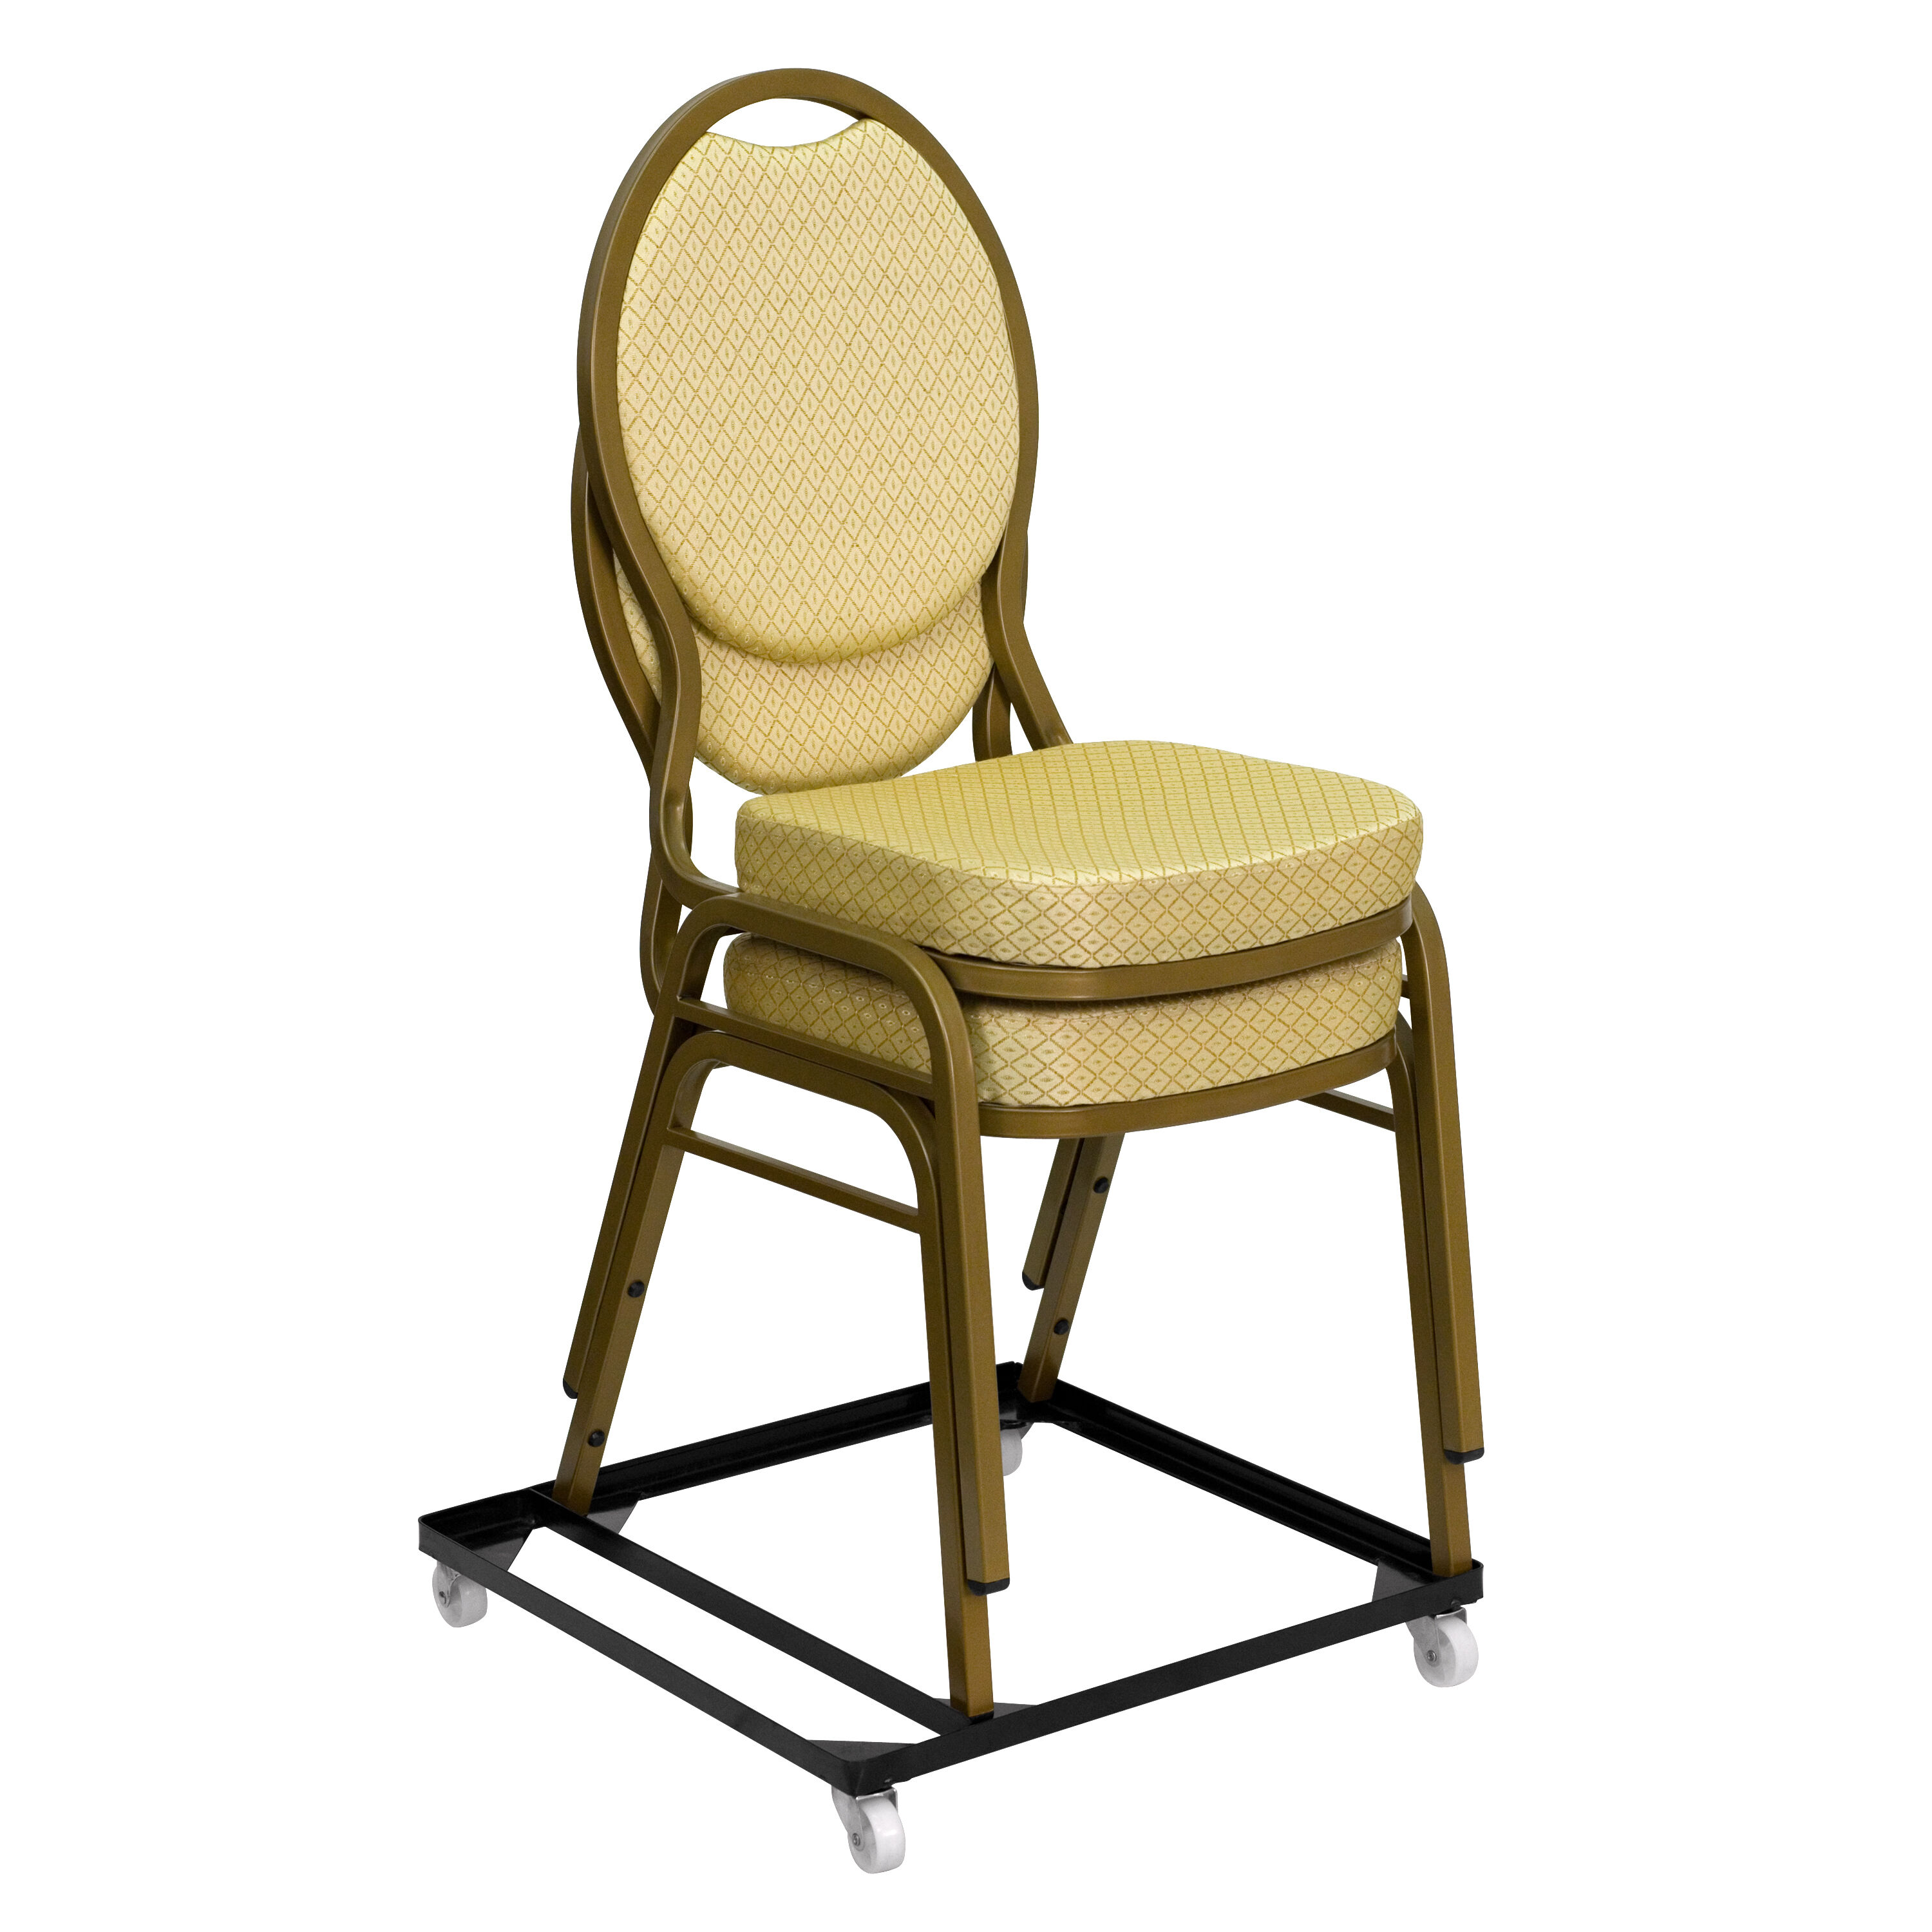 stackable chair covers australia alera elusion singapore church chairs furniture seating at wholesale prices 1 855 307 hercules series steel stack and dolly